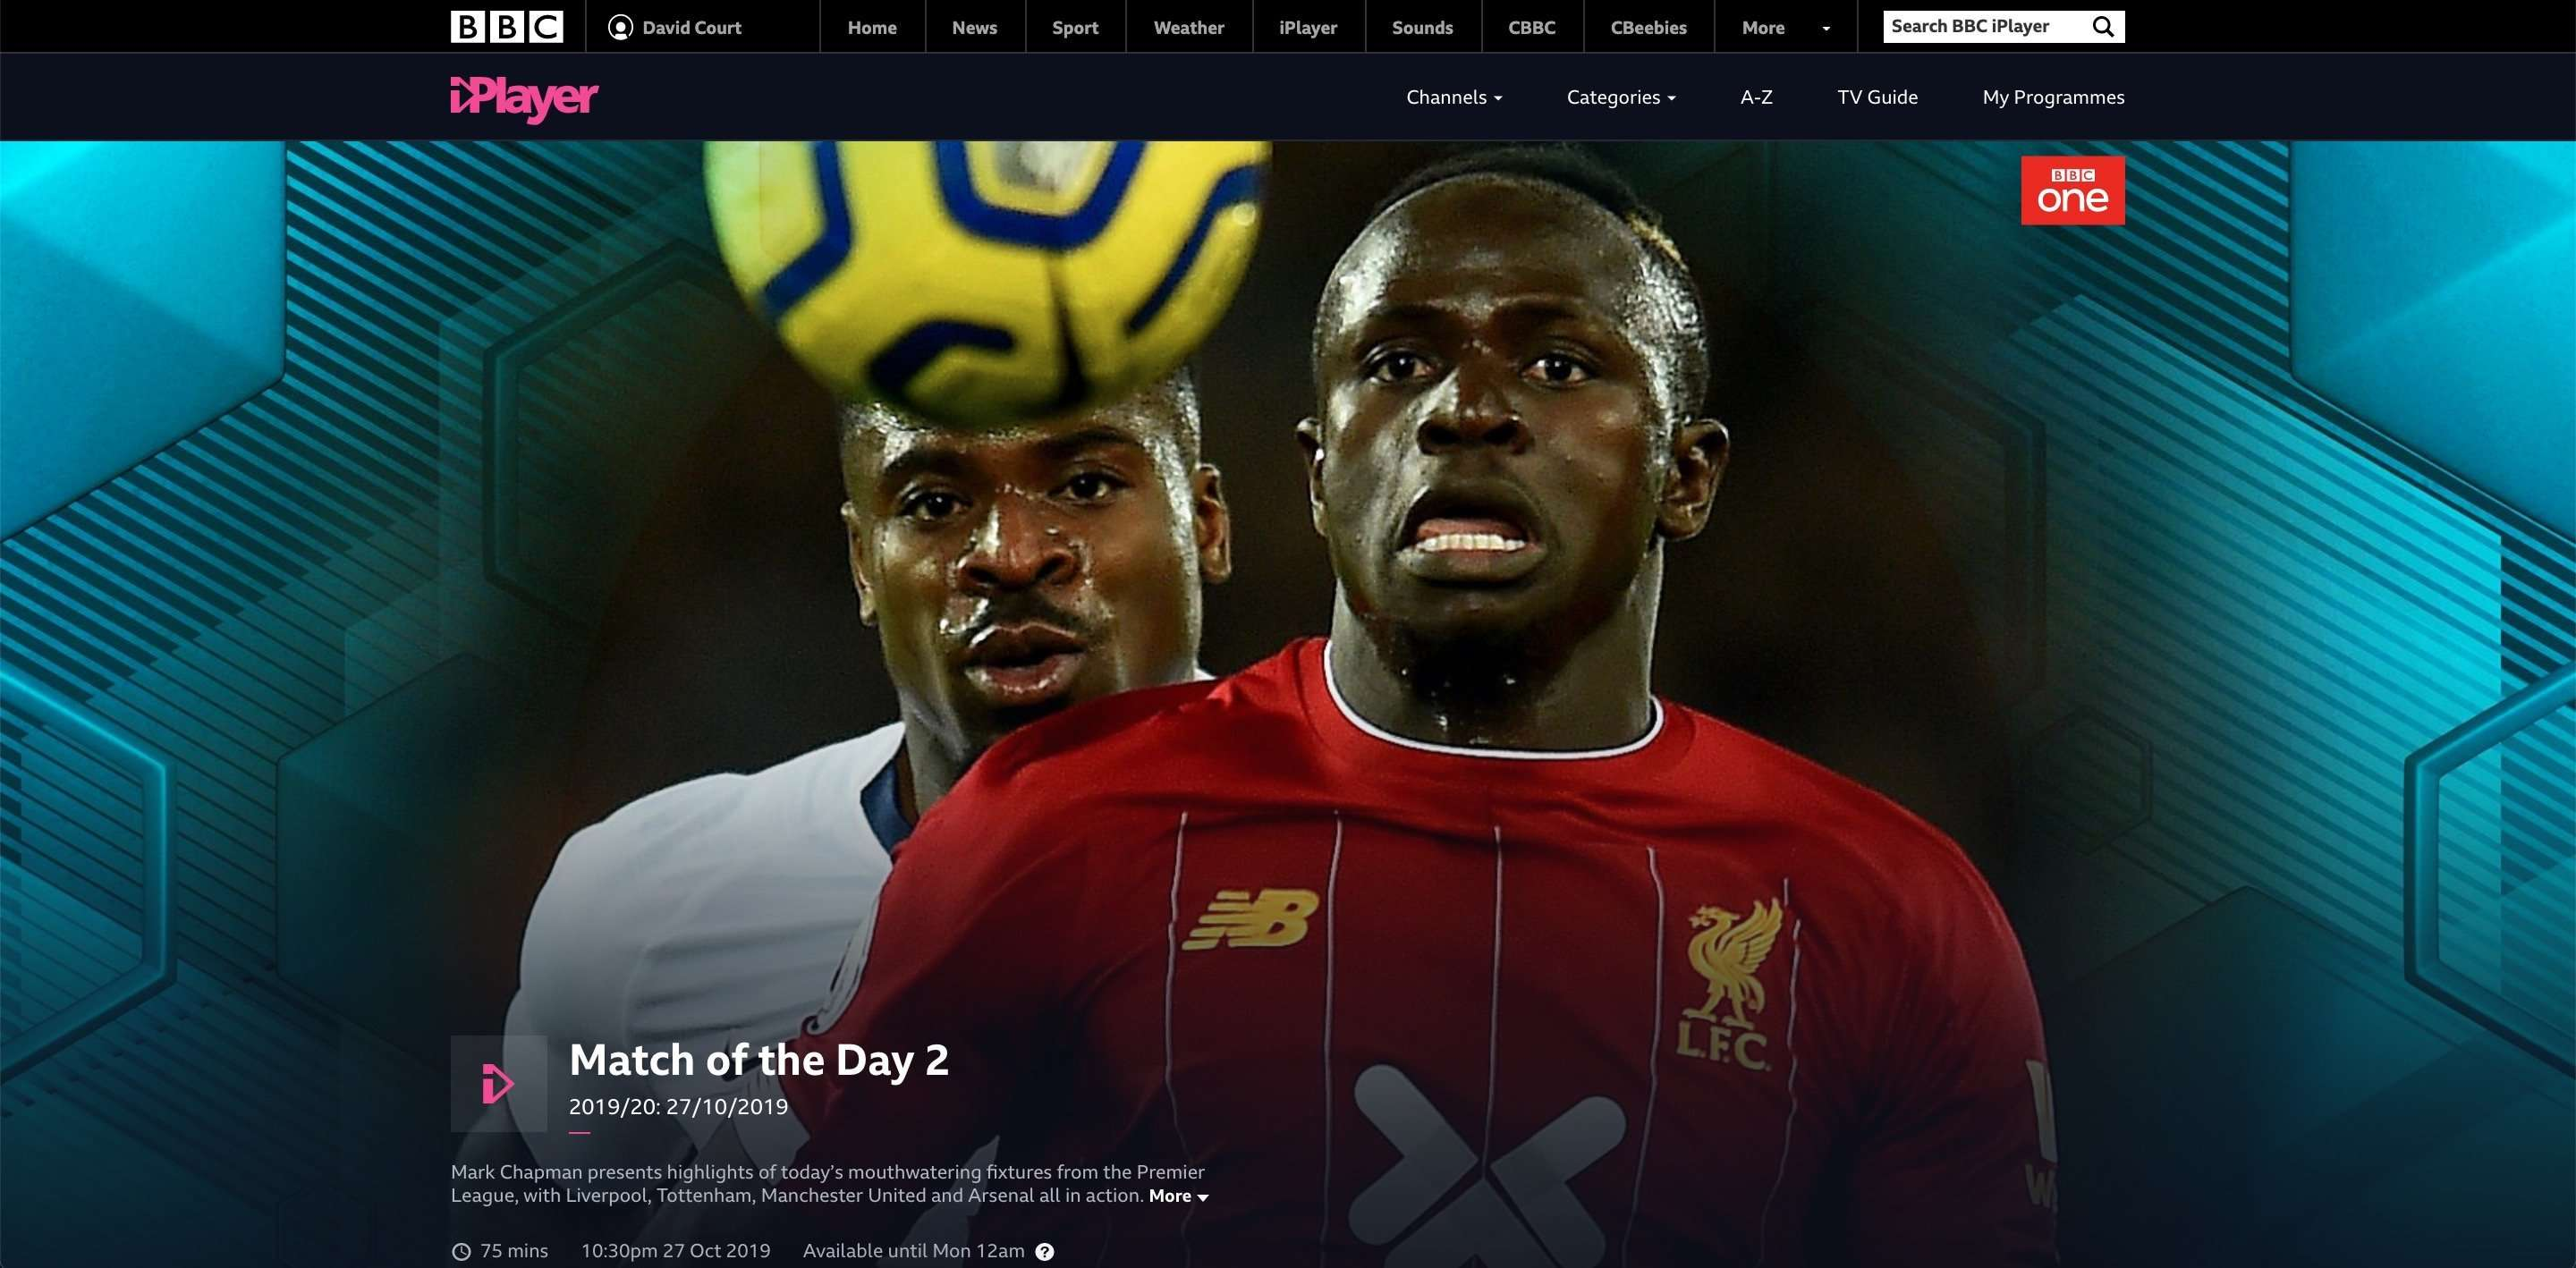 How to watch Match of The Day abroad